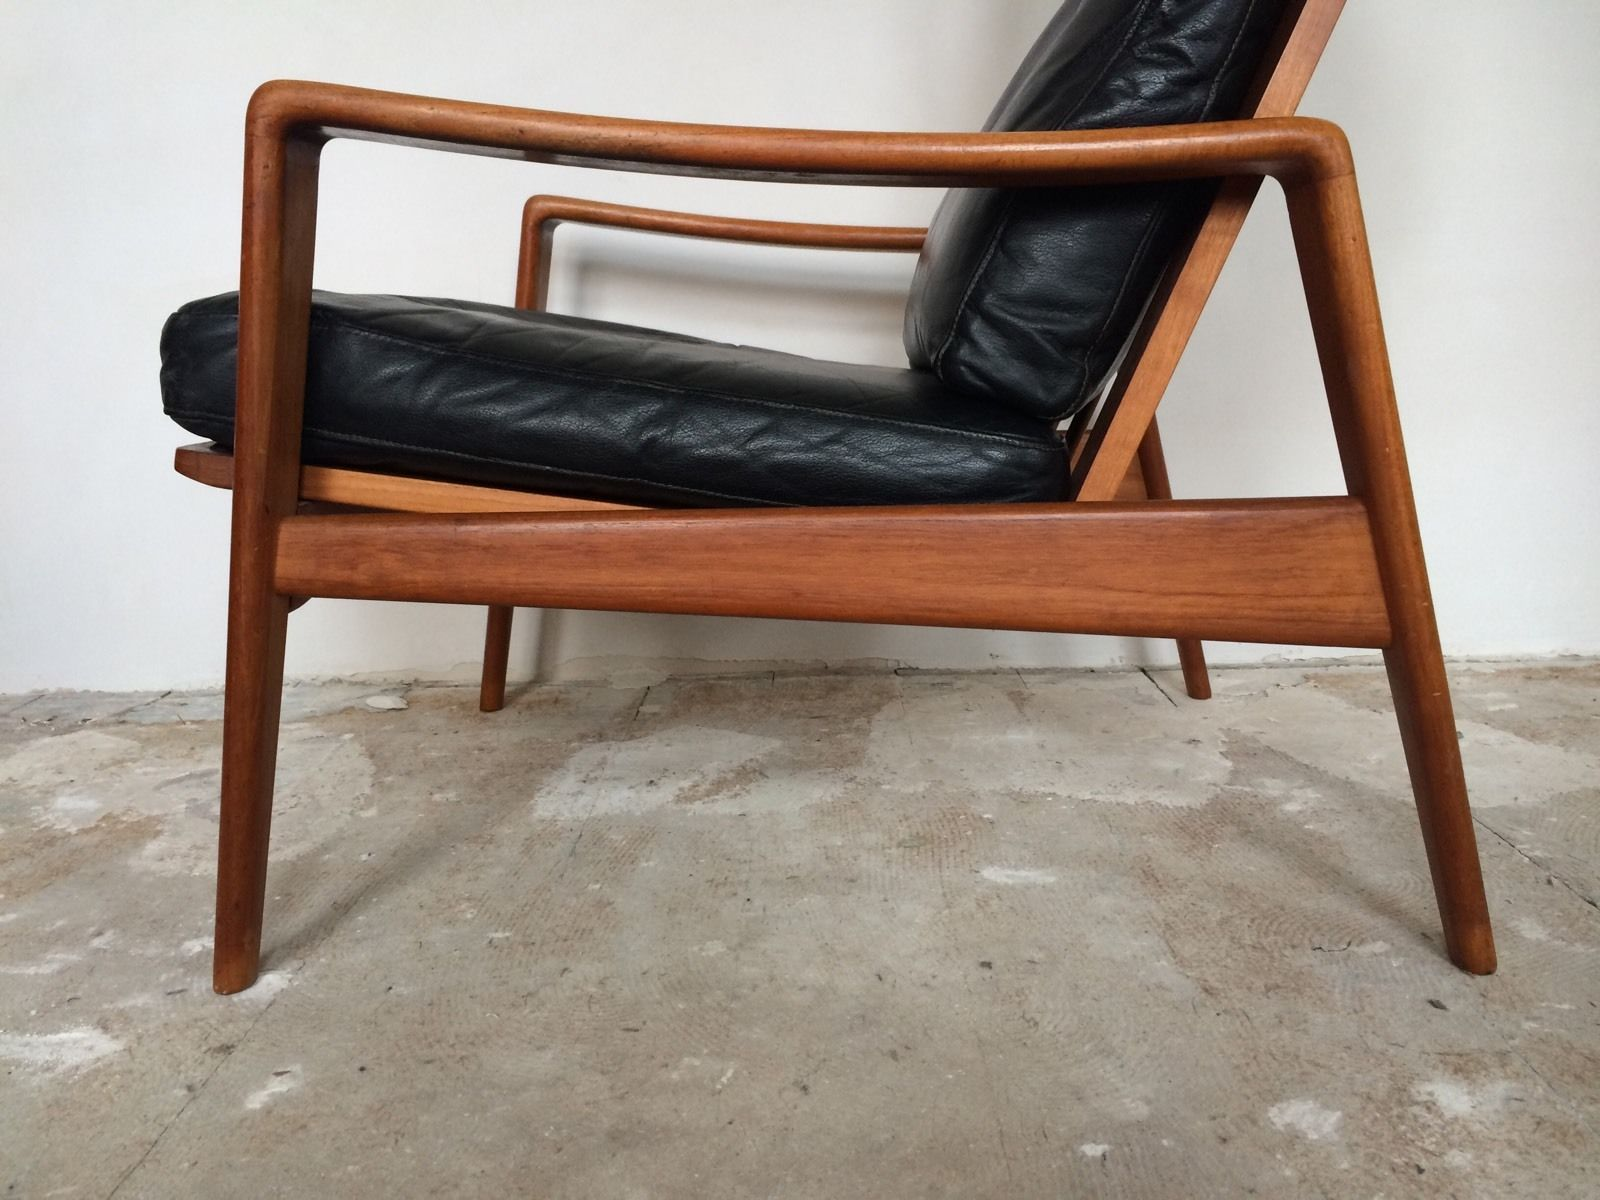 arne wahl iversen komfort lounge chair teak 60s danish. Black Bedroom Furniture Sets. Home Design Ideas